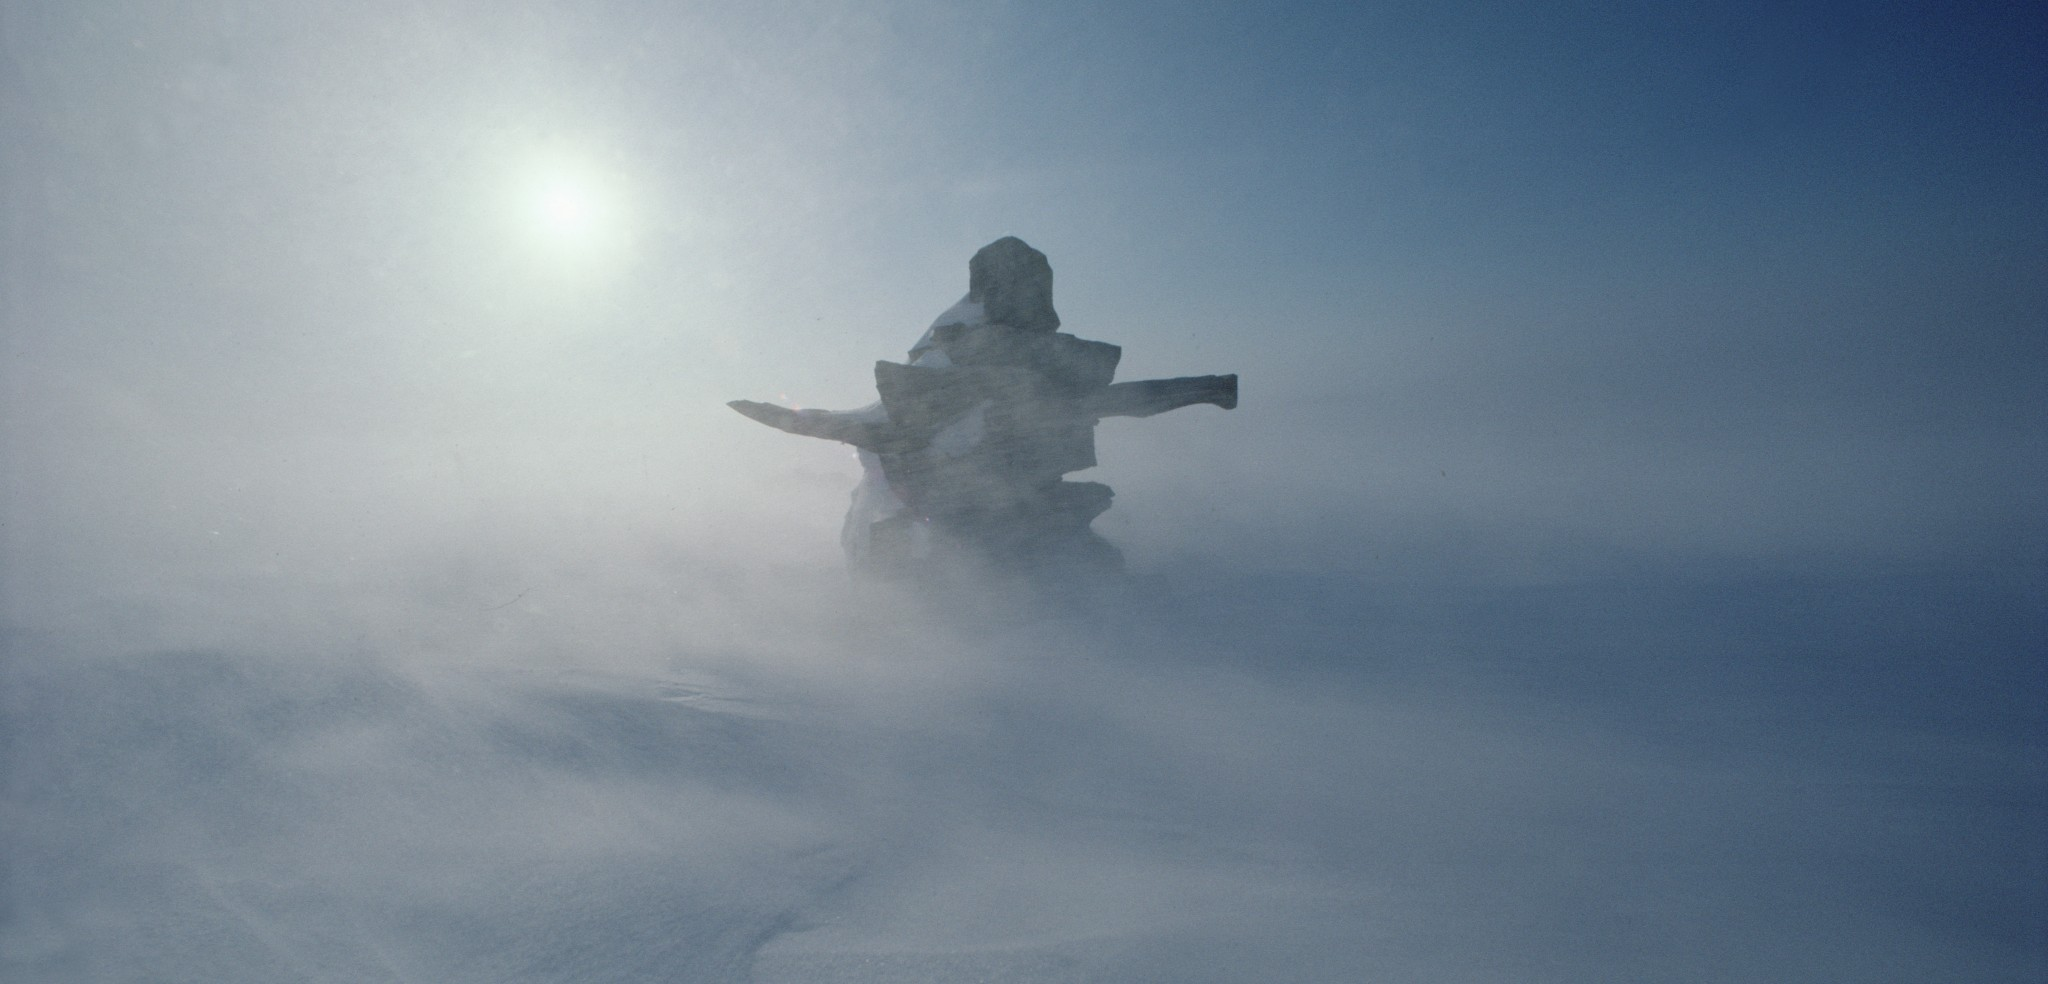 An Inuitdirection marker stands out amidst the blowing snow on Ellesmere Island.Even among the Inuit, the island'snorthern shoreline is largely devoid ofhuman life. Photo byJim Brandenburg/Minden Pictures/Corbis